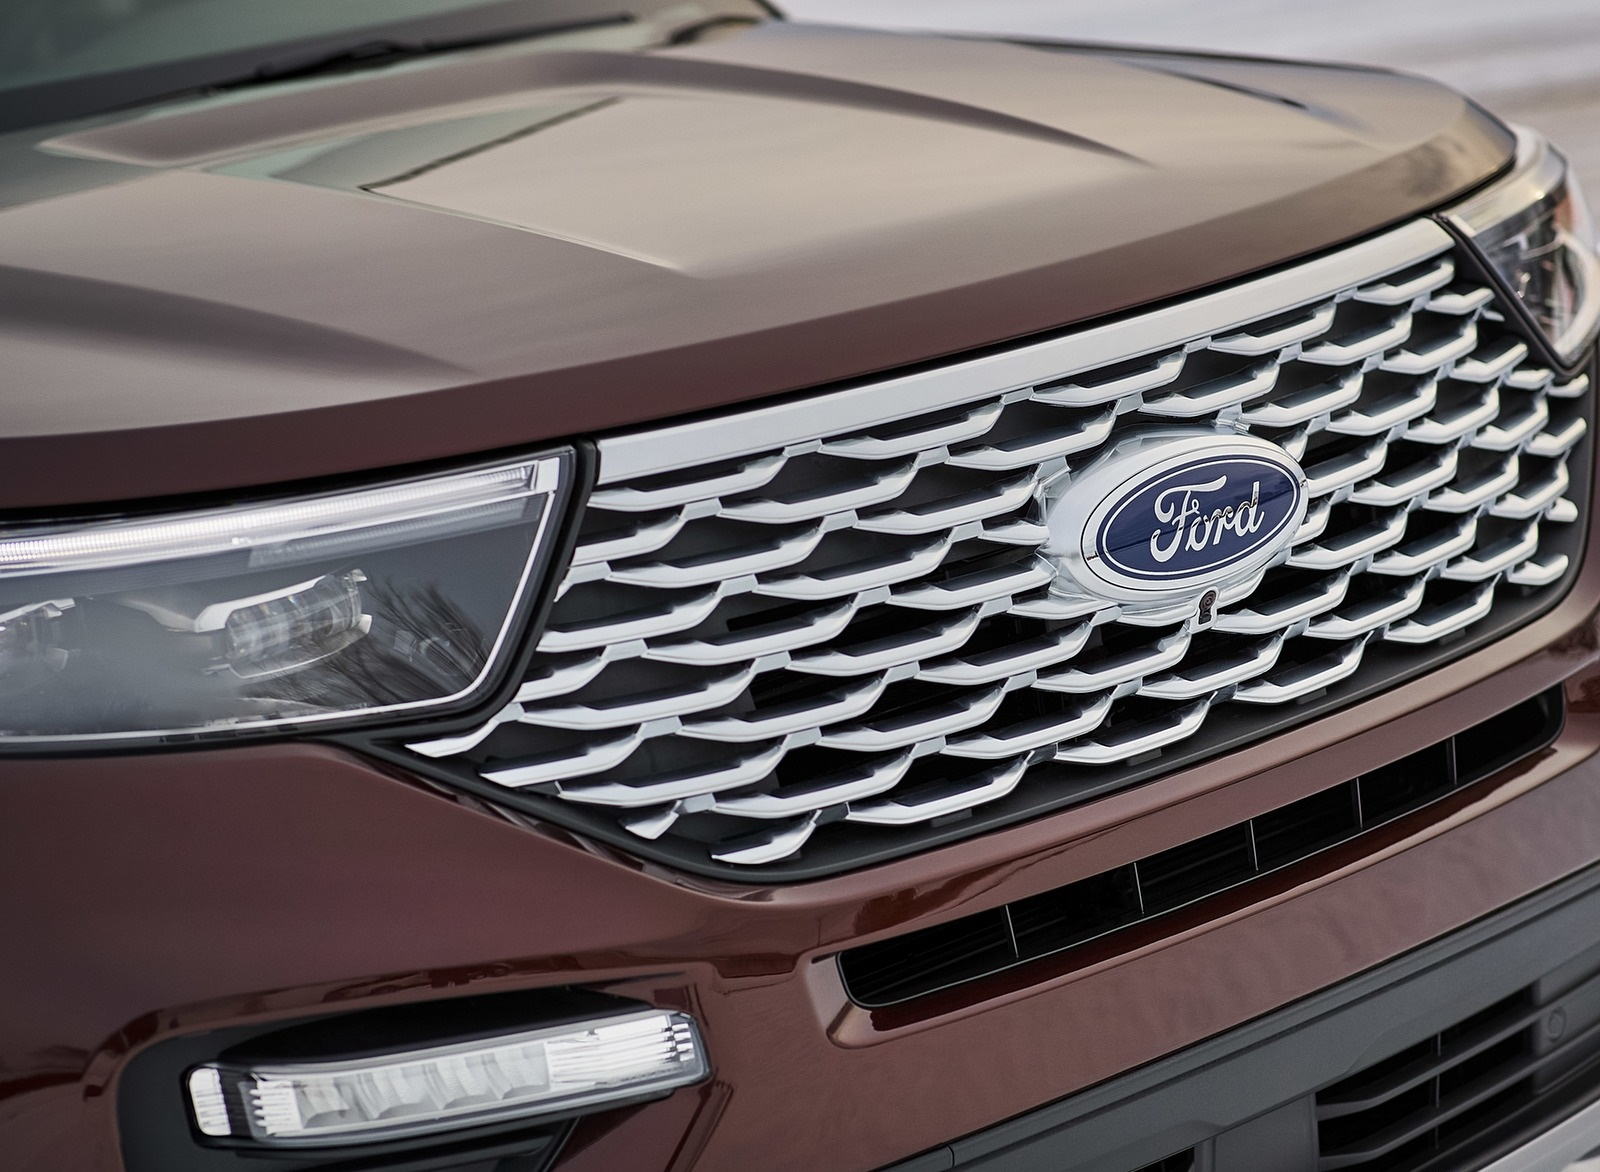 2020 Ford Explorer Grill Wallpapers (11)